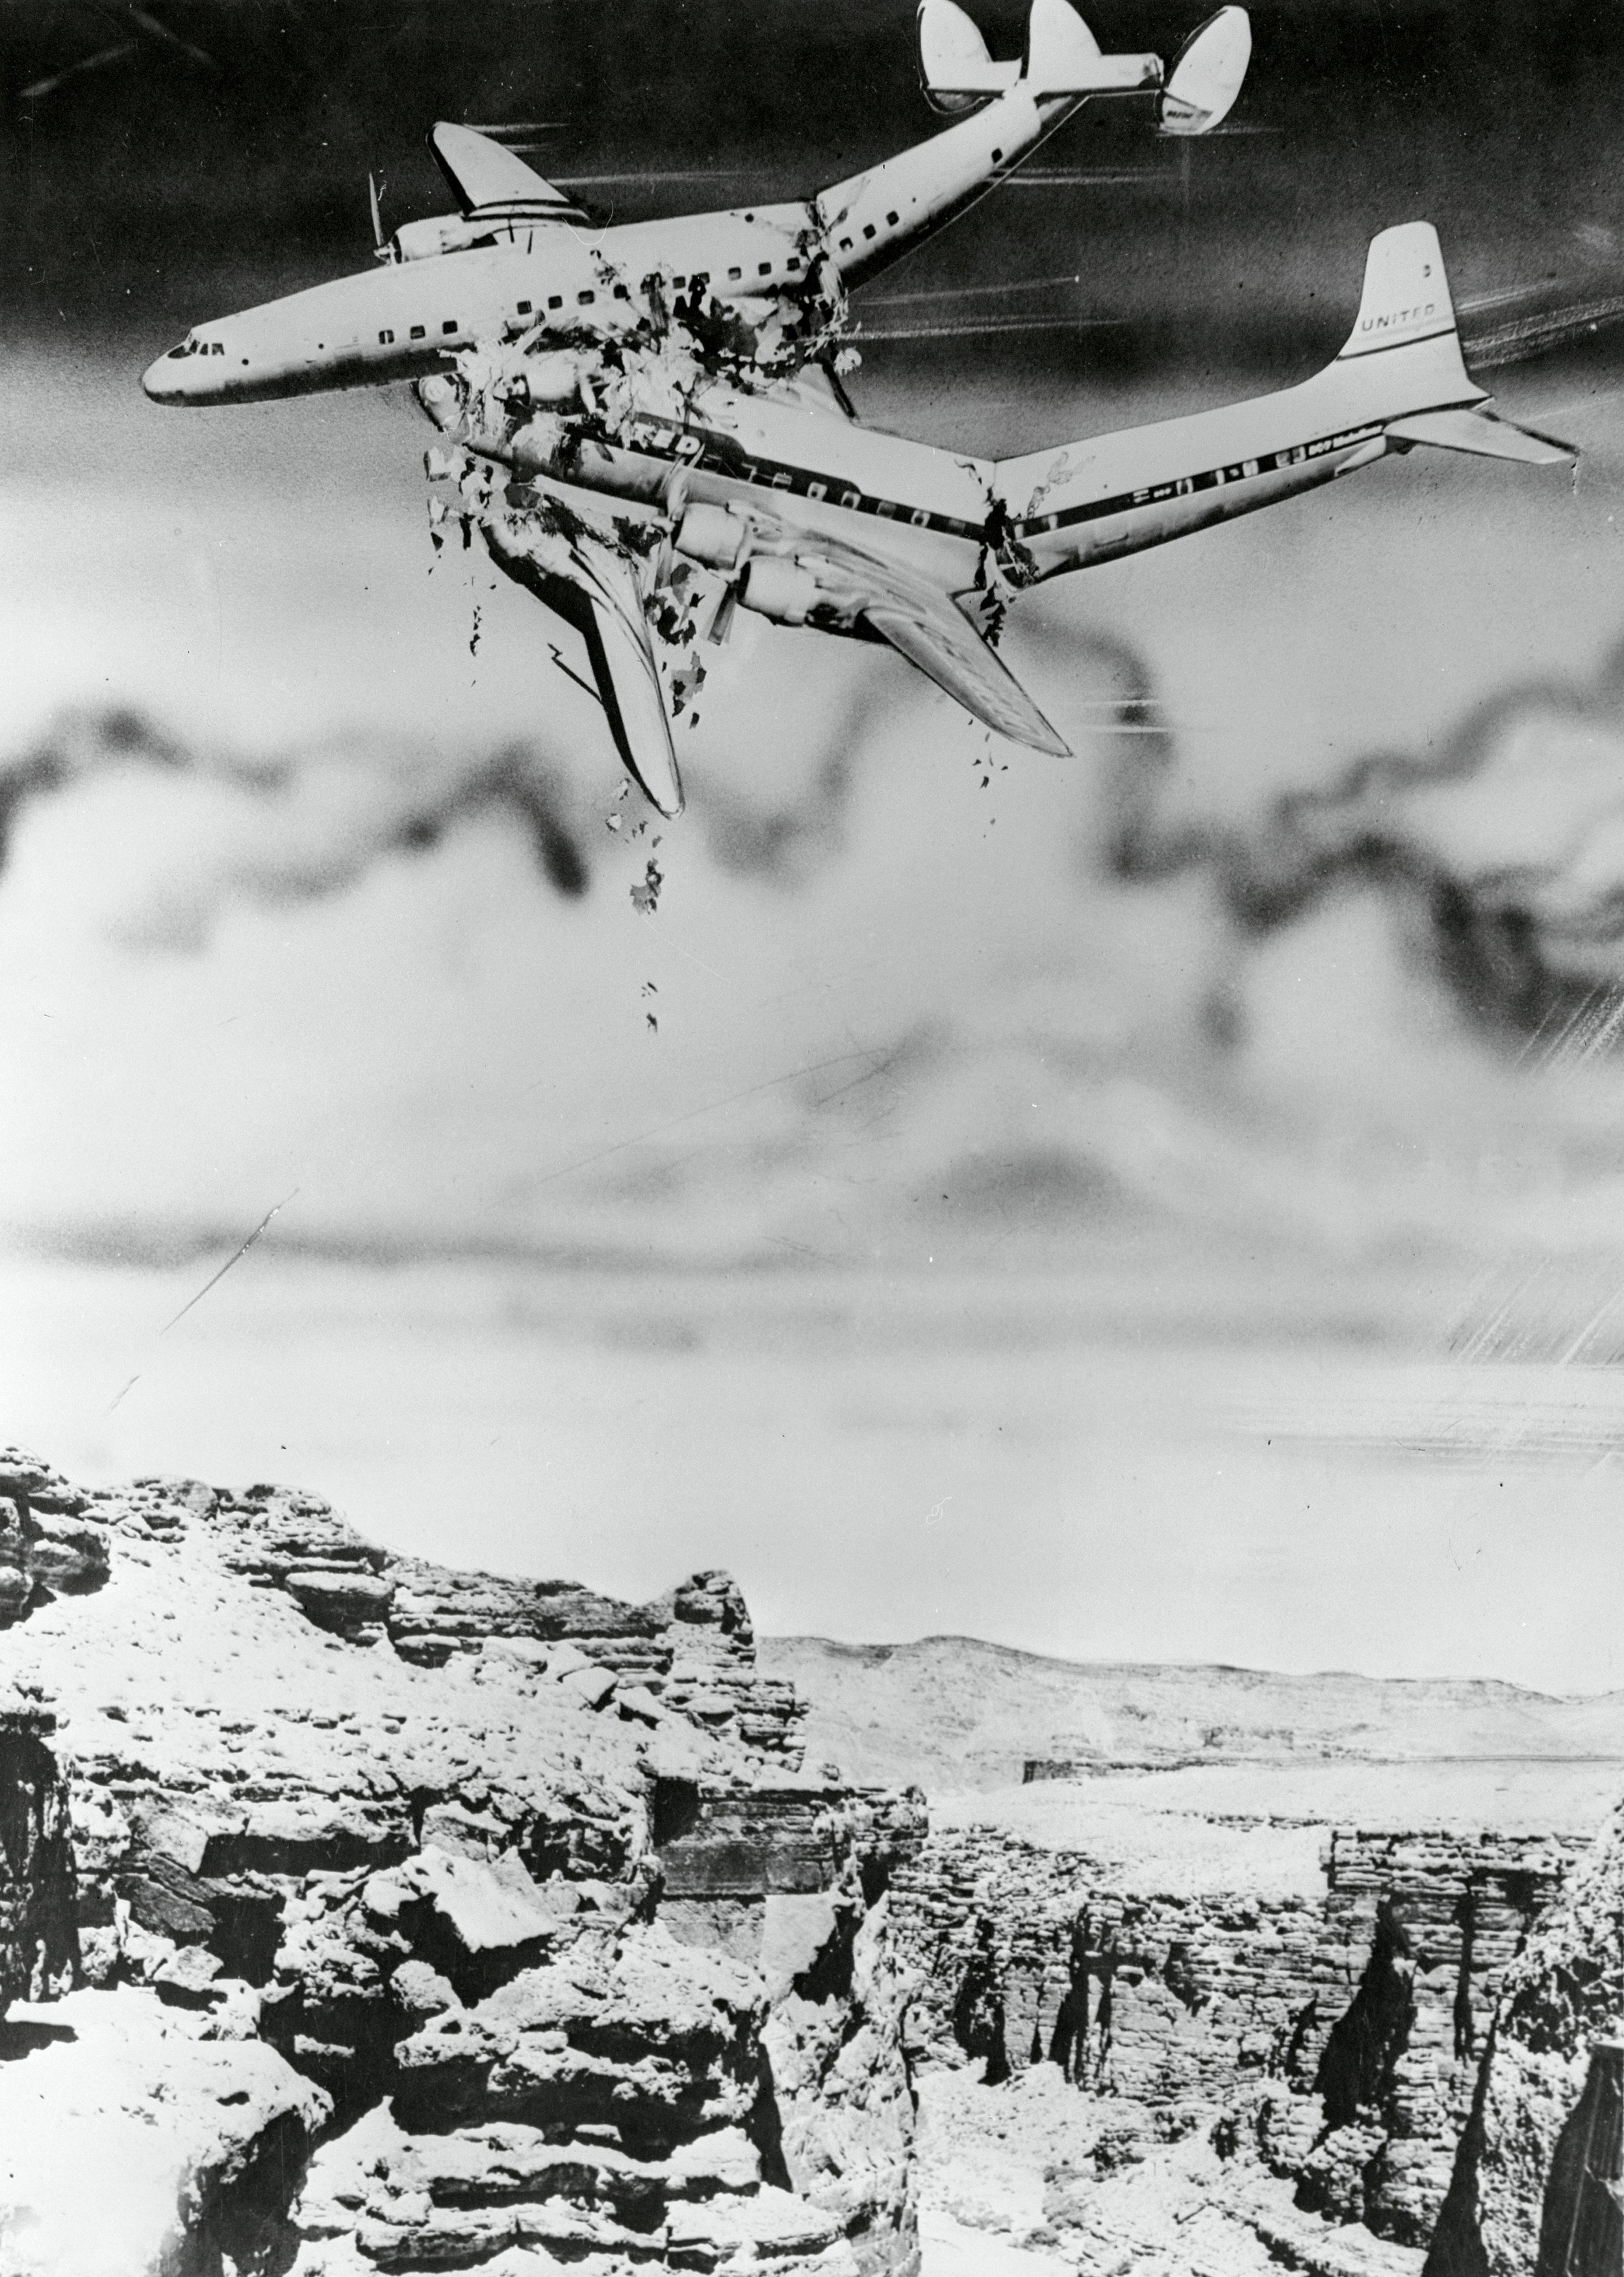 When these two planes collided over the Grand Canyon, it changed aviation history